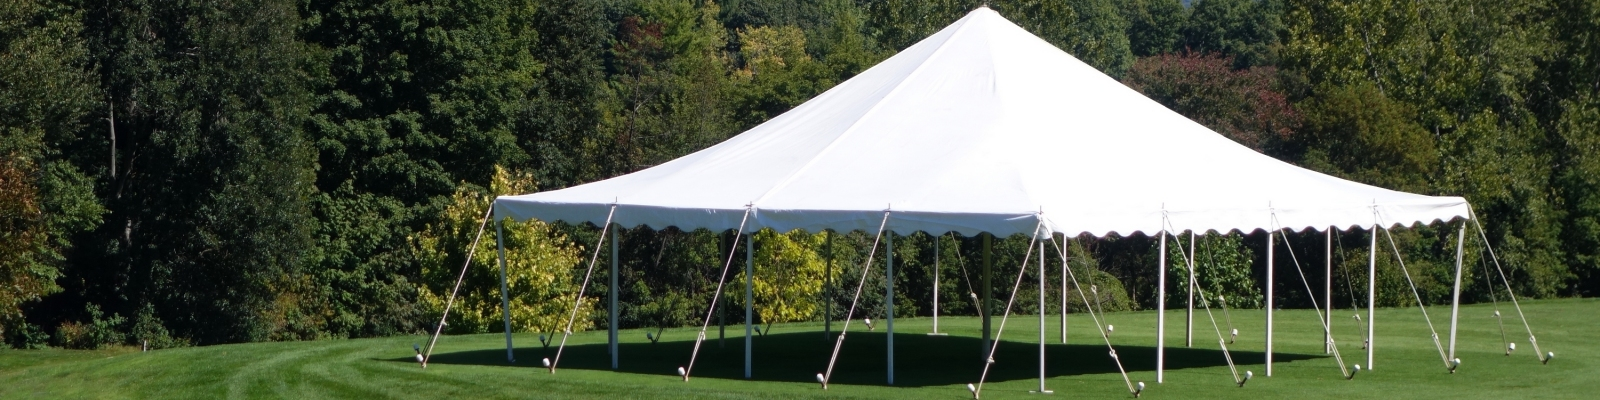 Event rentals in Central Virginia